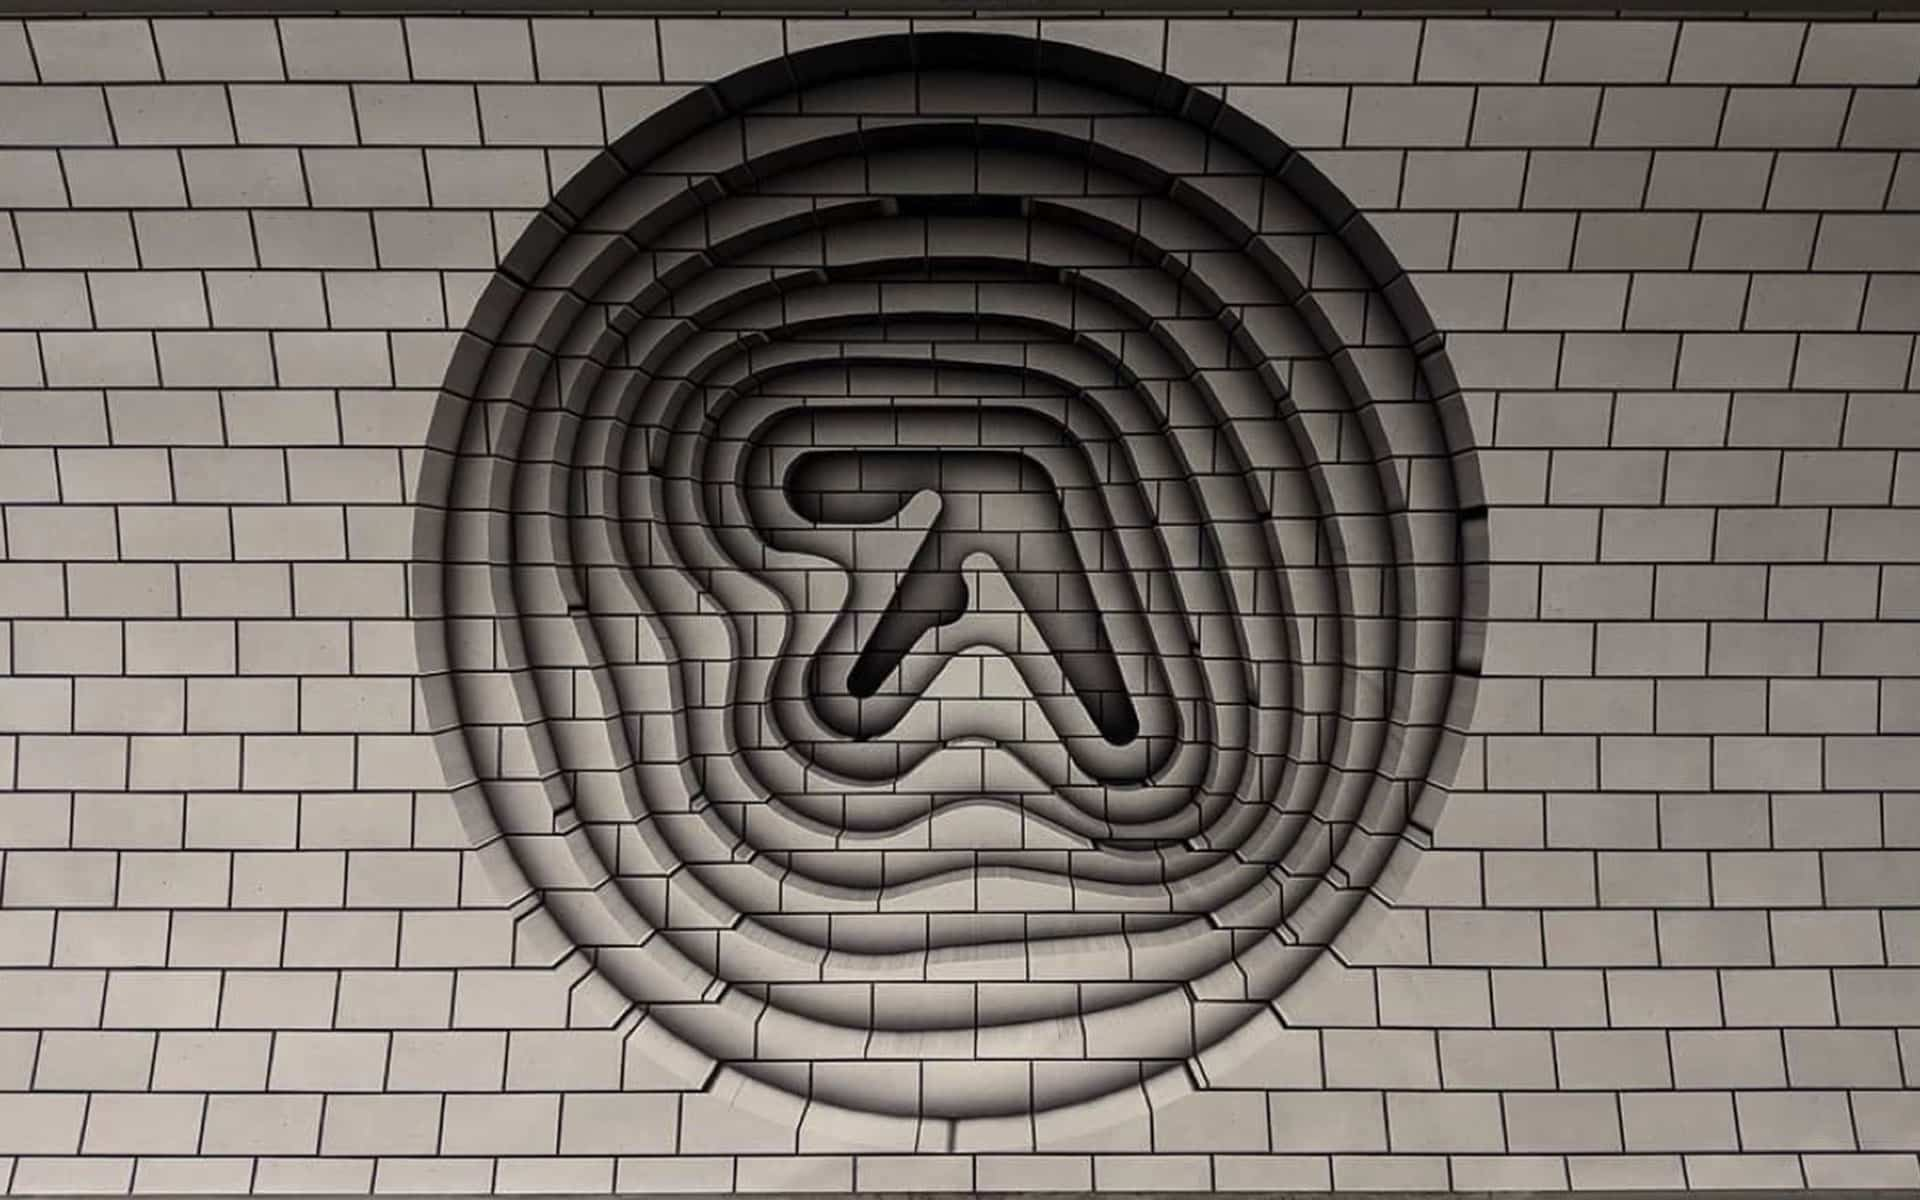 Mysterious Aphex Twin logo pops up in London and in Turin